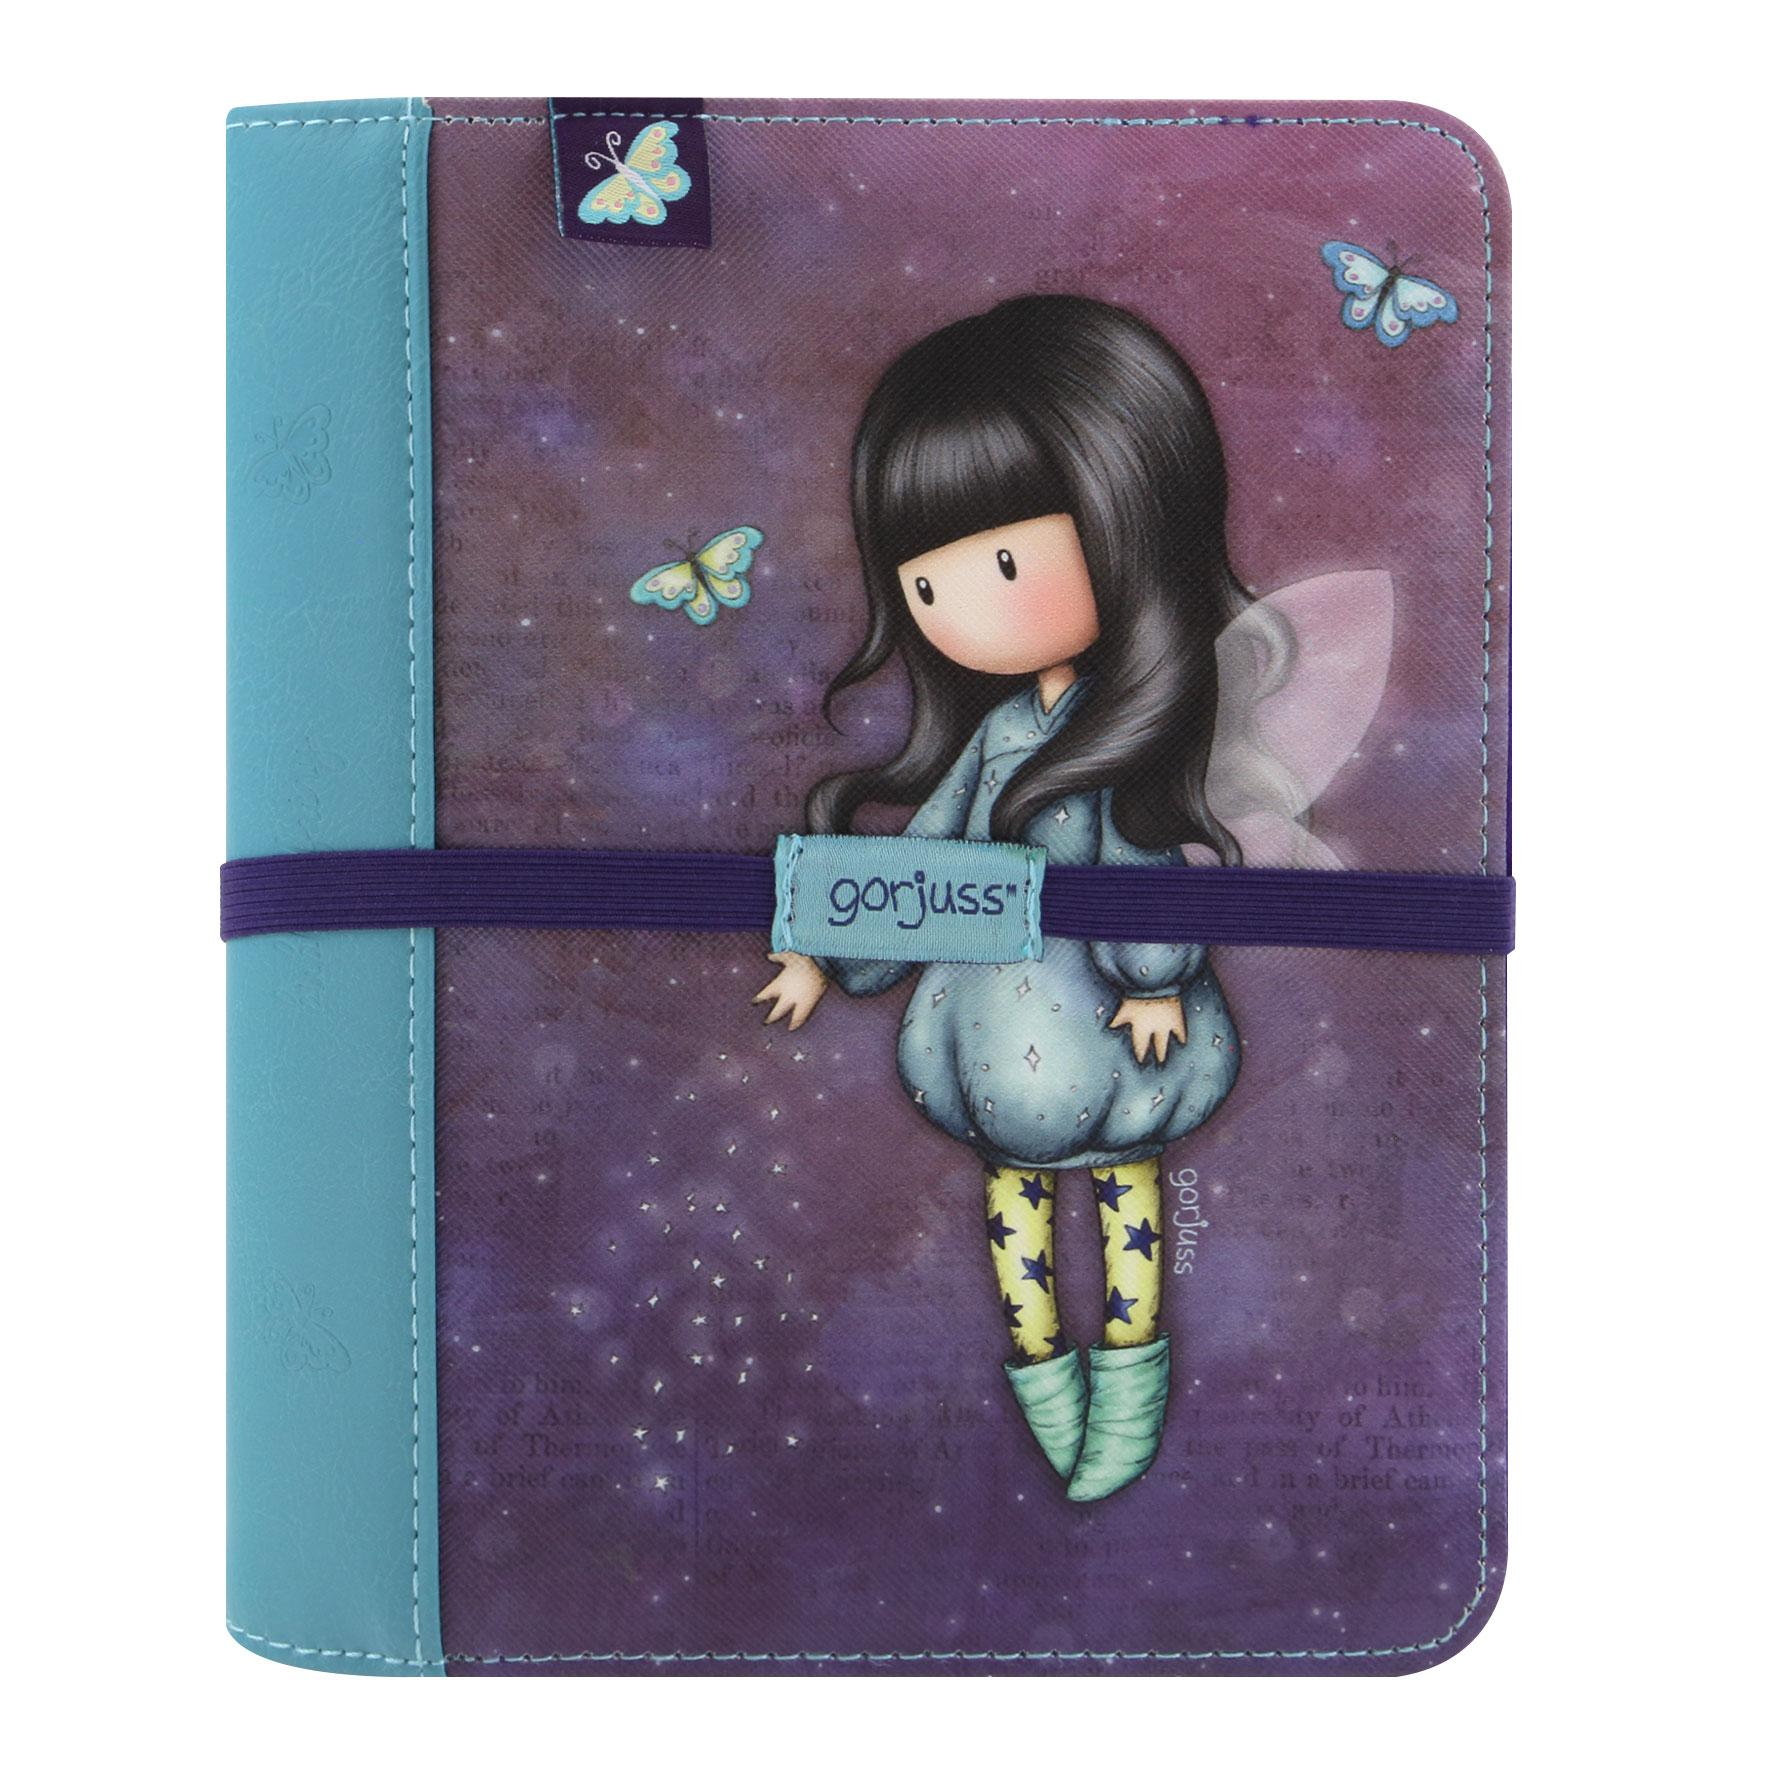 Organiser Santoro Gorjuss Bubble Fairy (256GJ04)